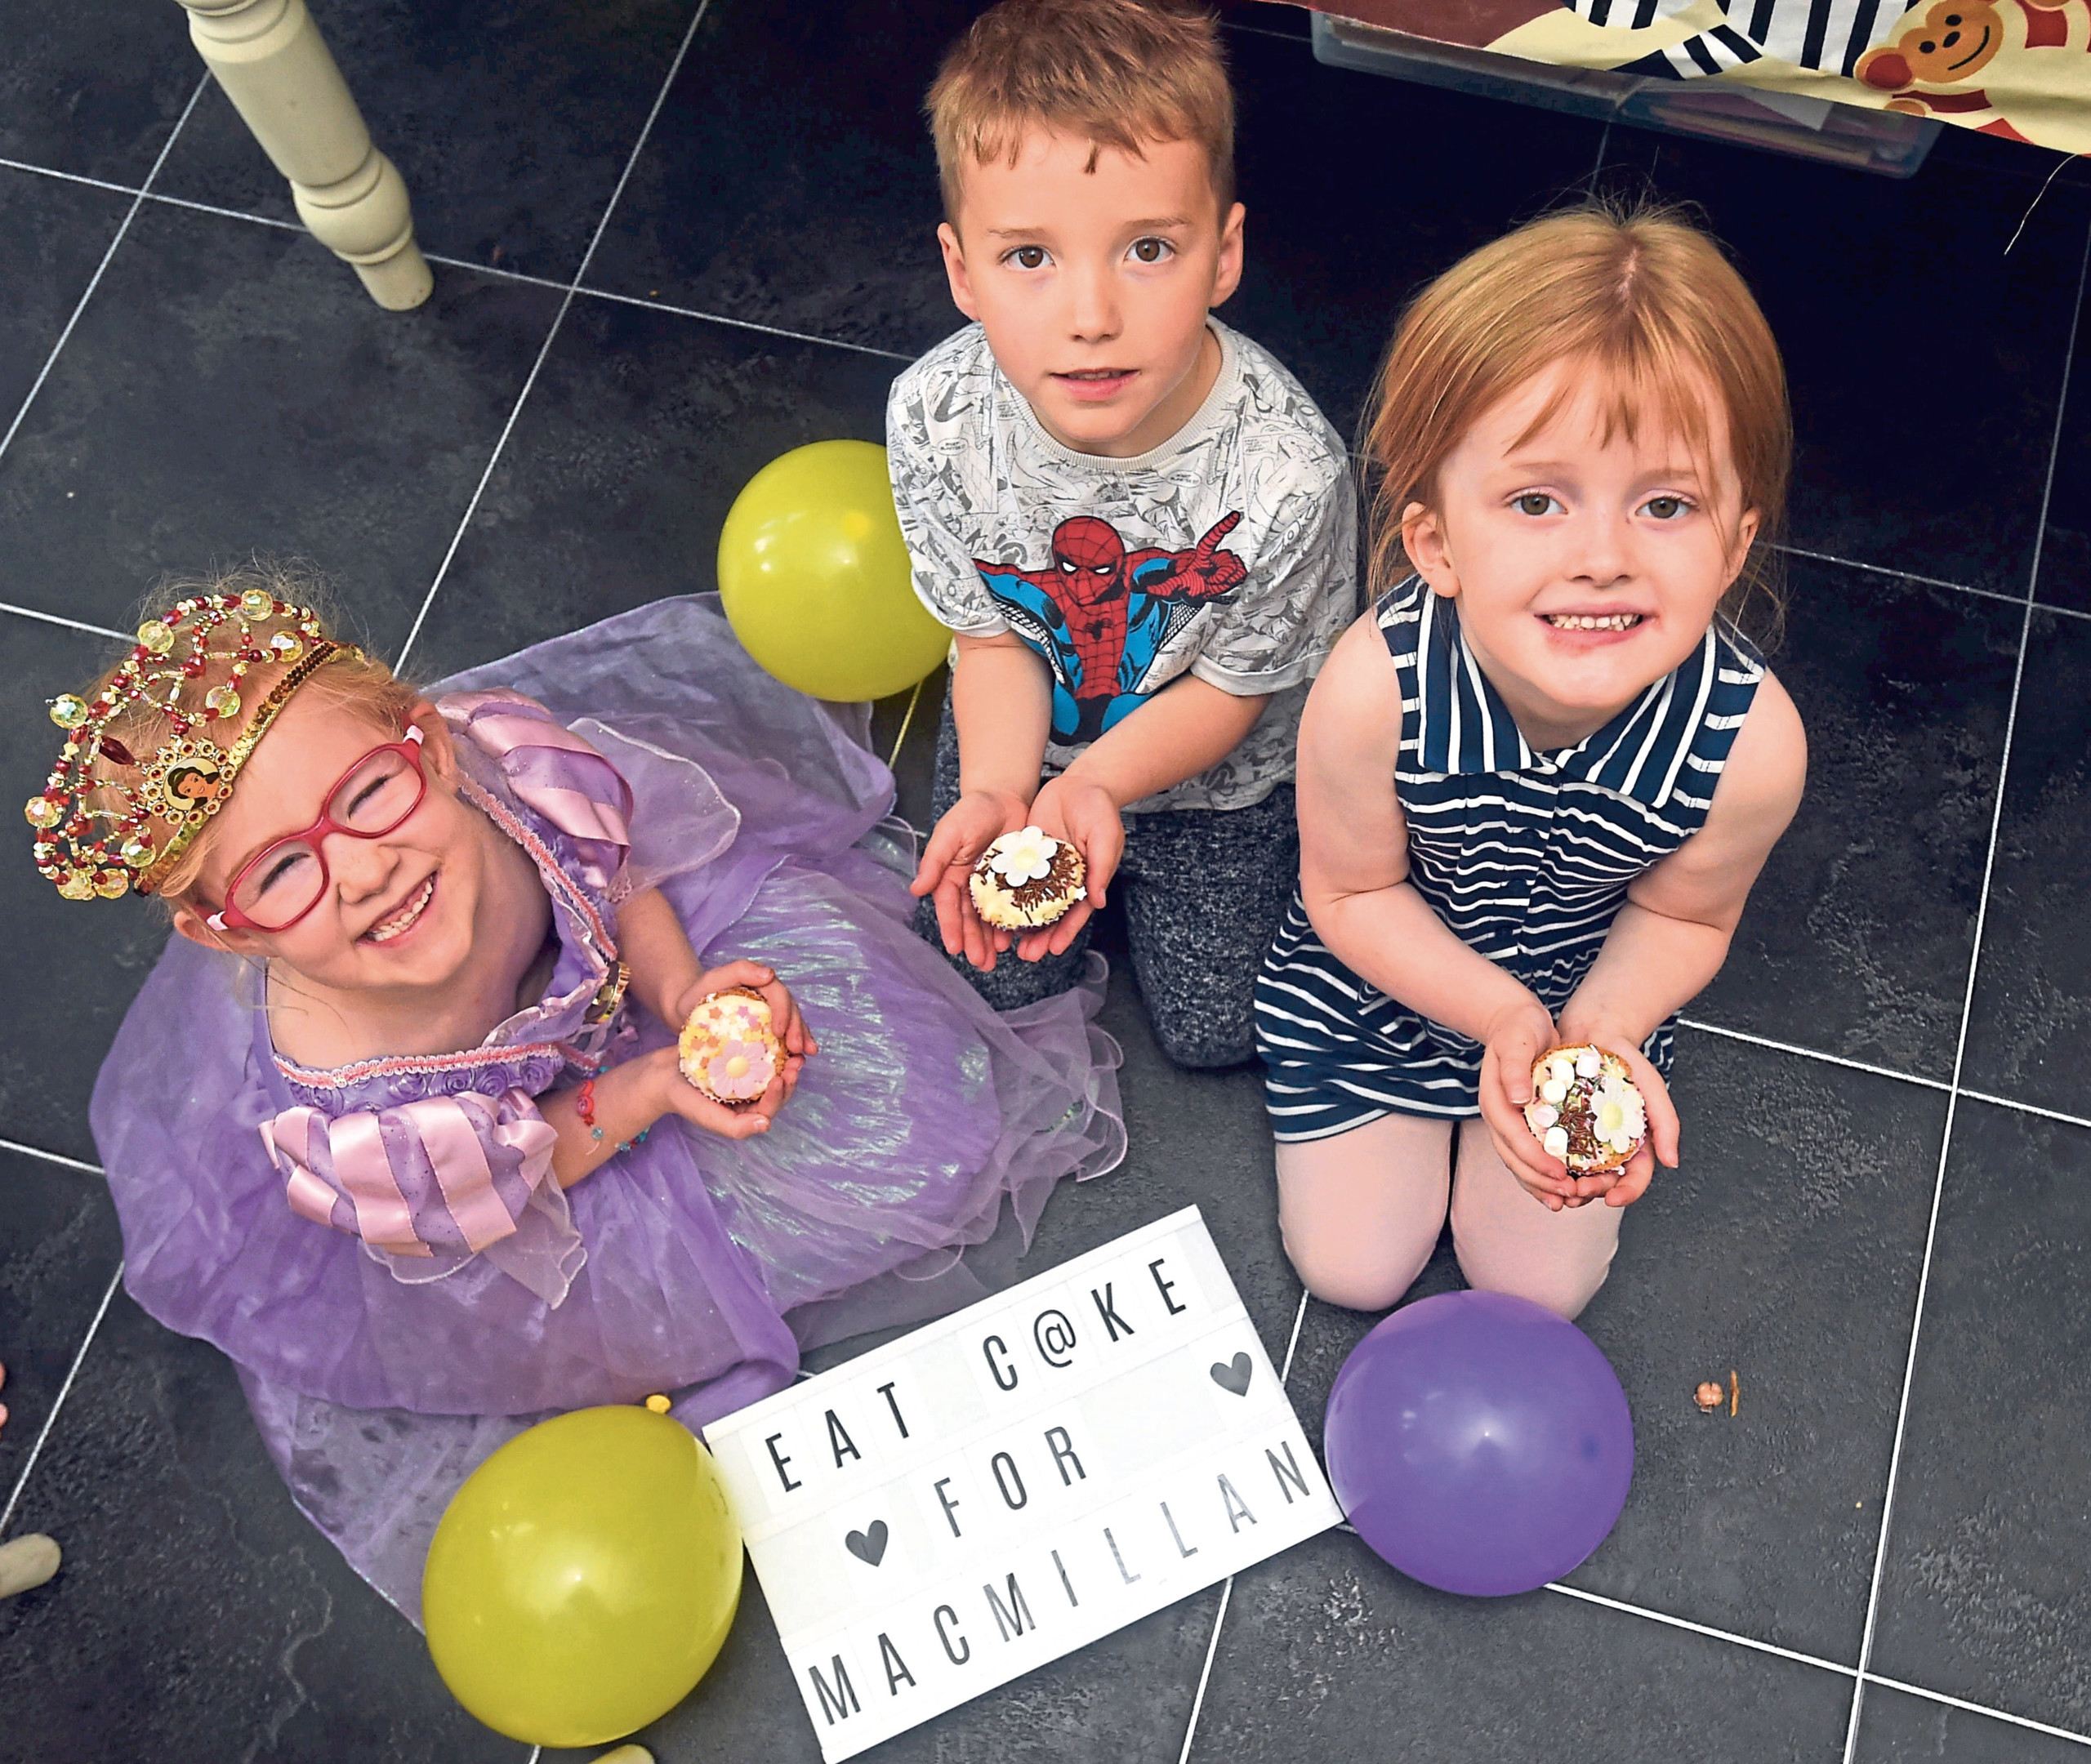 Caitlyn Allan and Ethan McNeil, both aged five